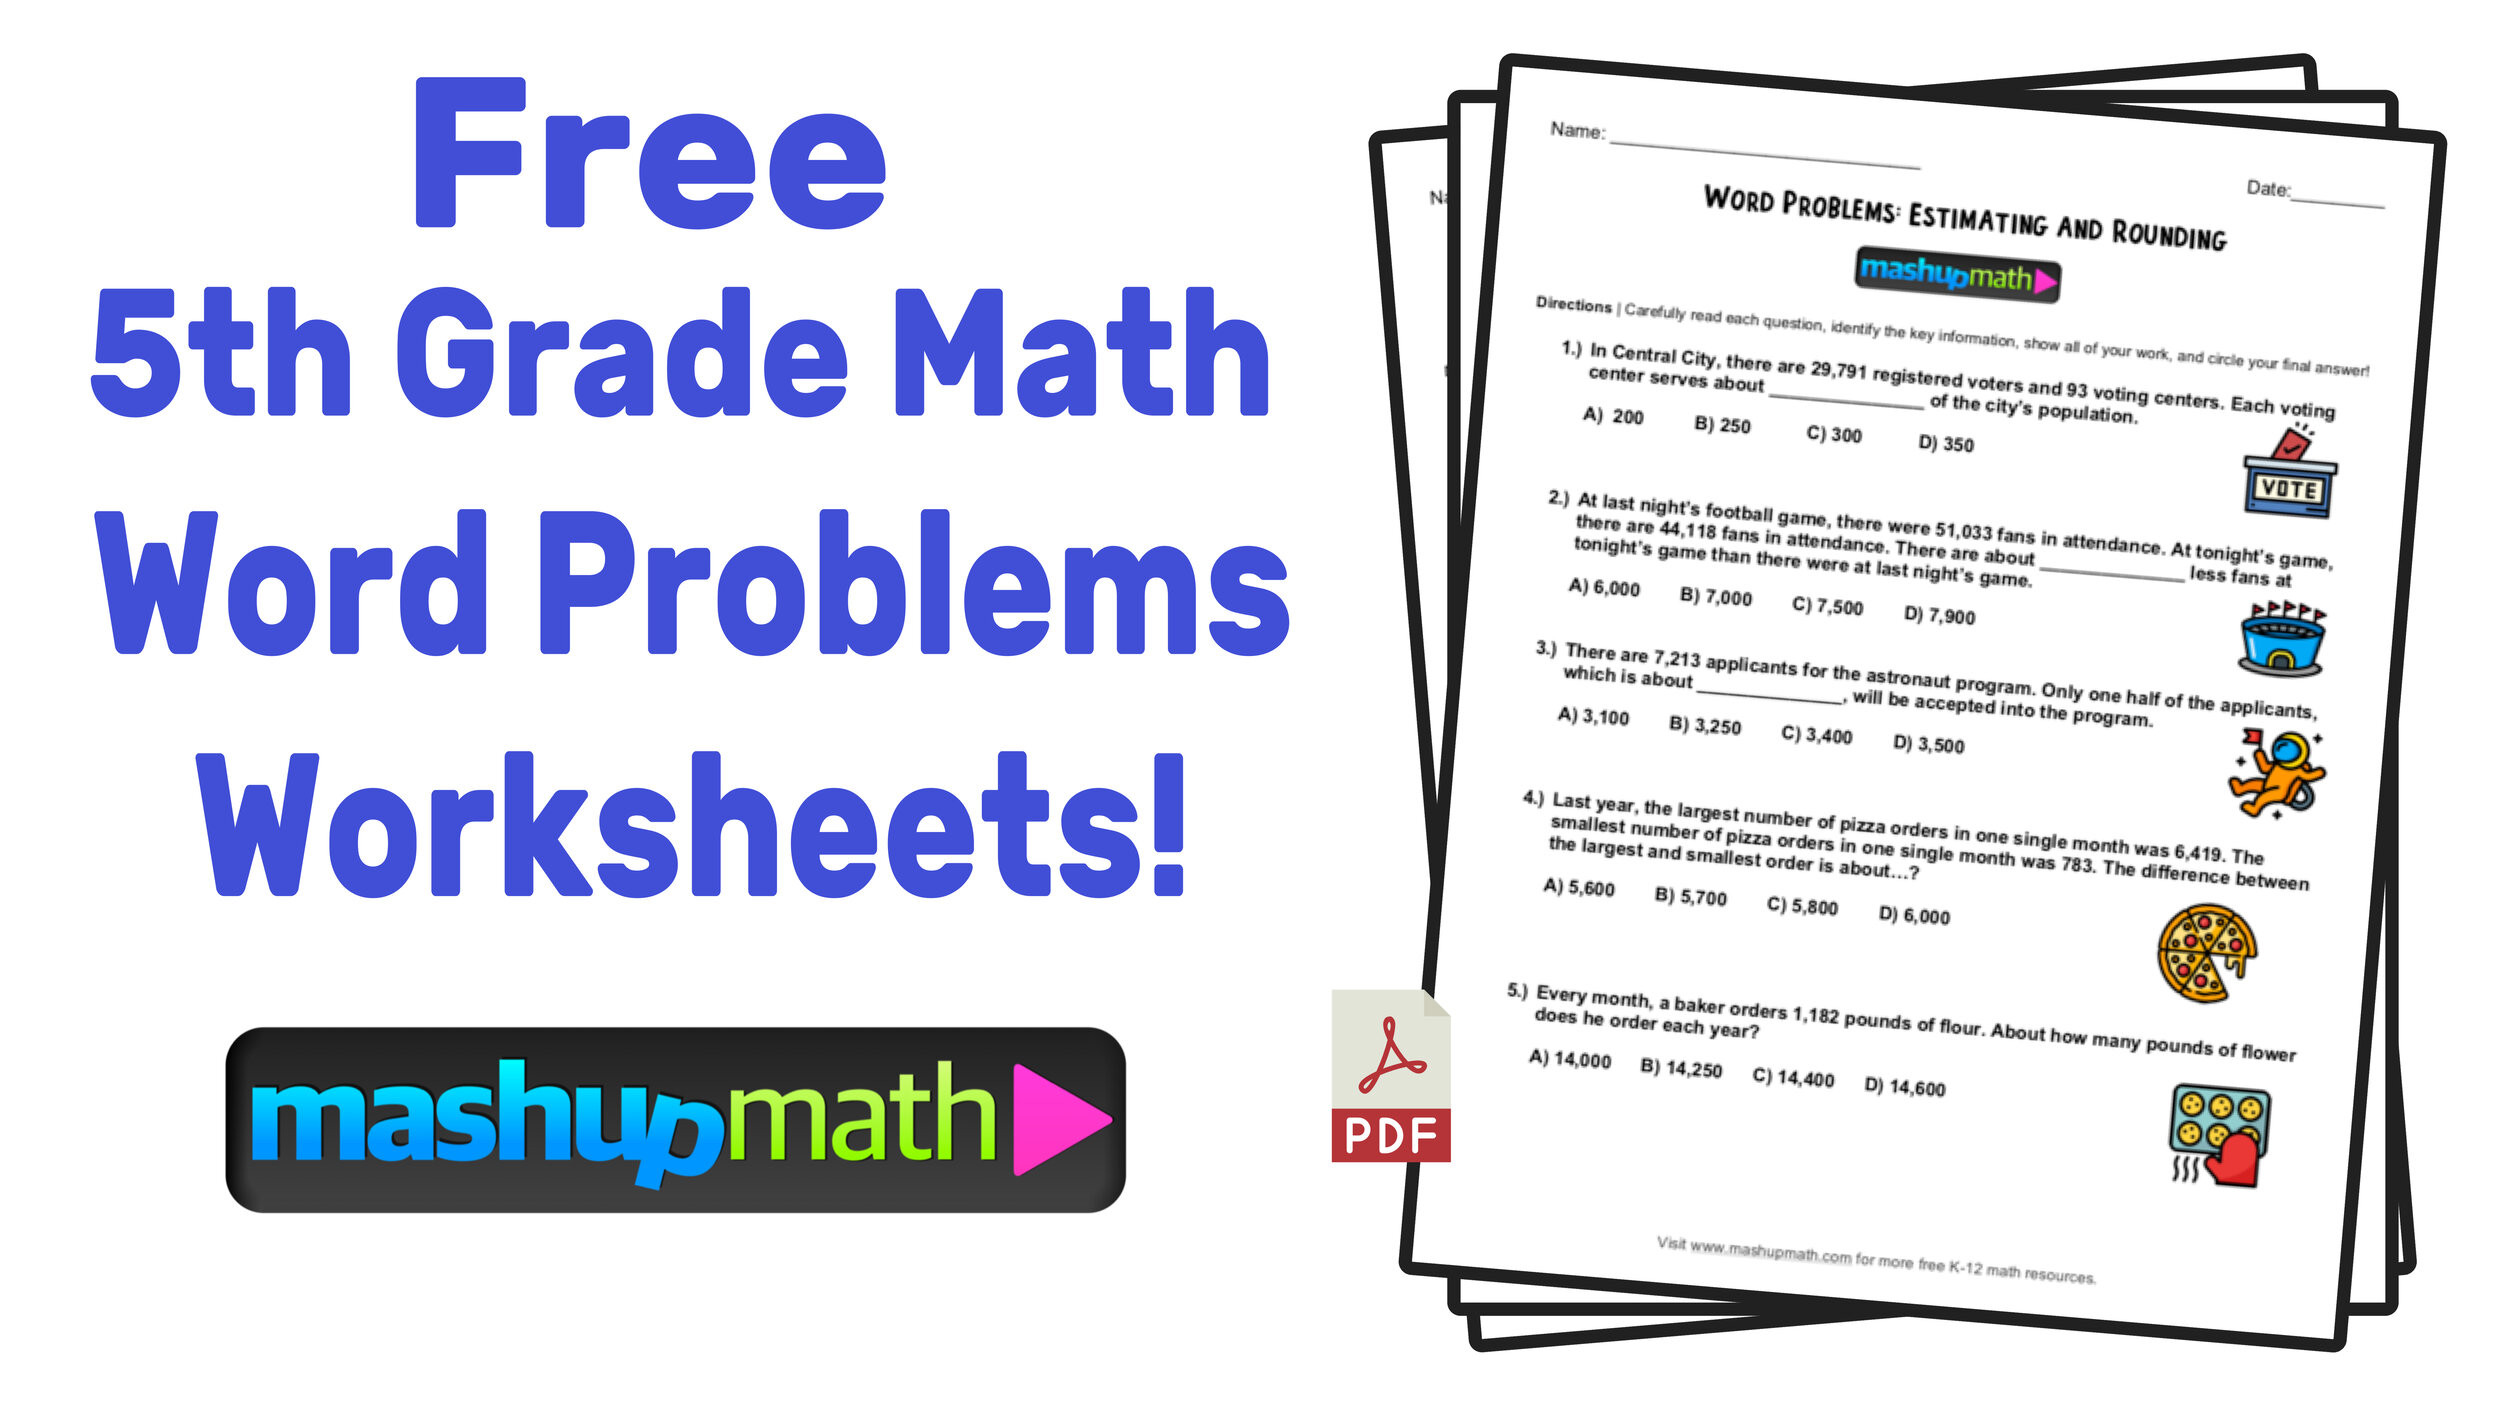 Estimating Word Problems 3rd Grade 5th Grade Math Word Problems Free Worksheets with Answers